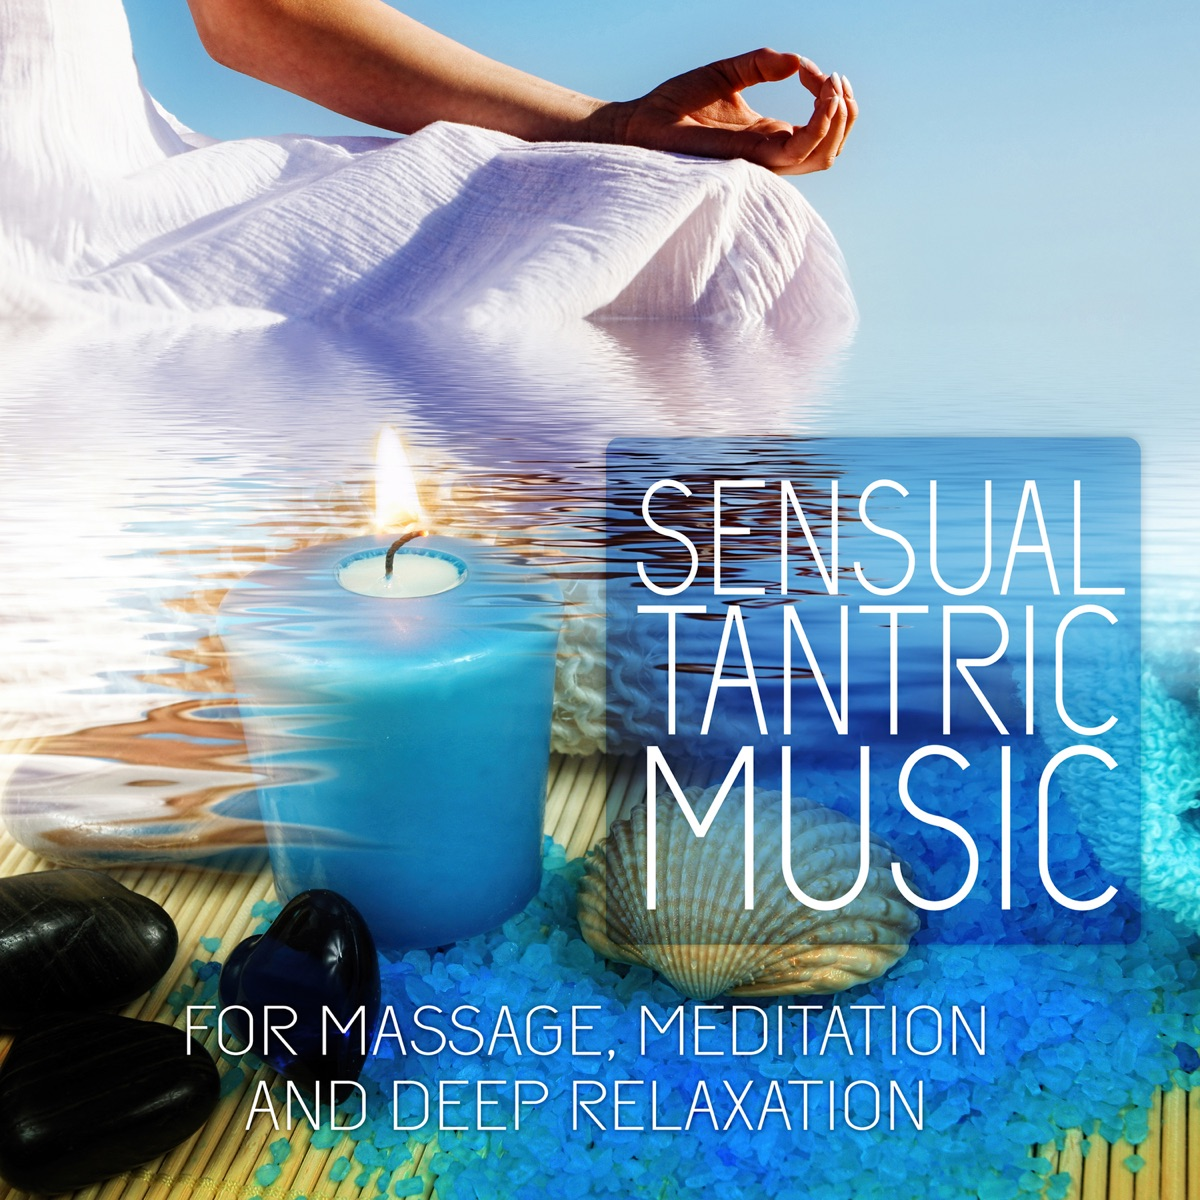 ... Sensual Tantric Music: Tantra Music for Meditation, Sex Relaxation,  Intimacy and Deep Massage ...